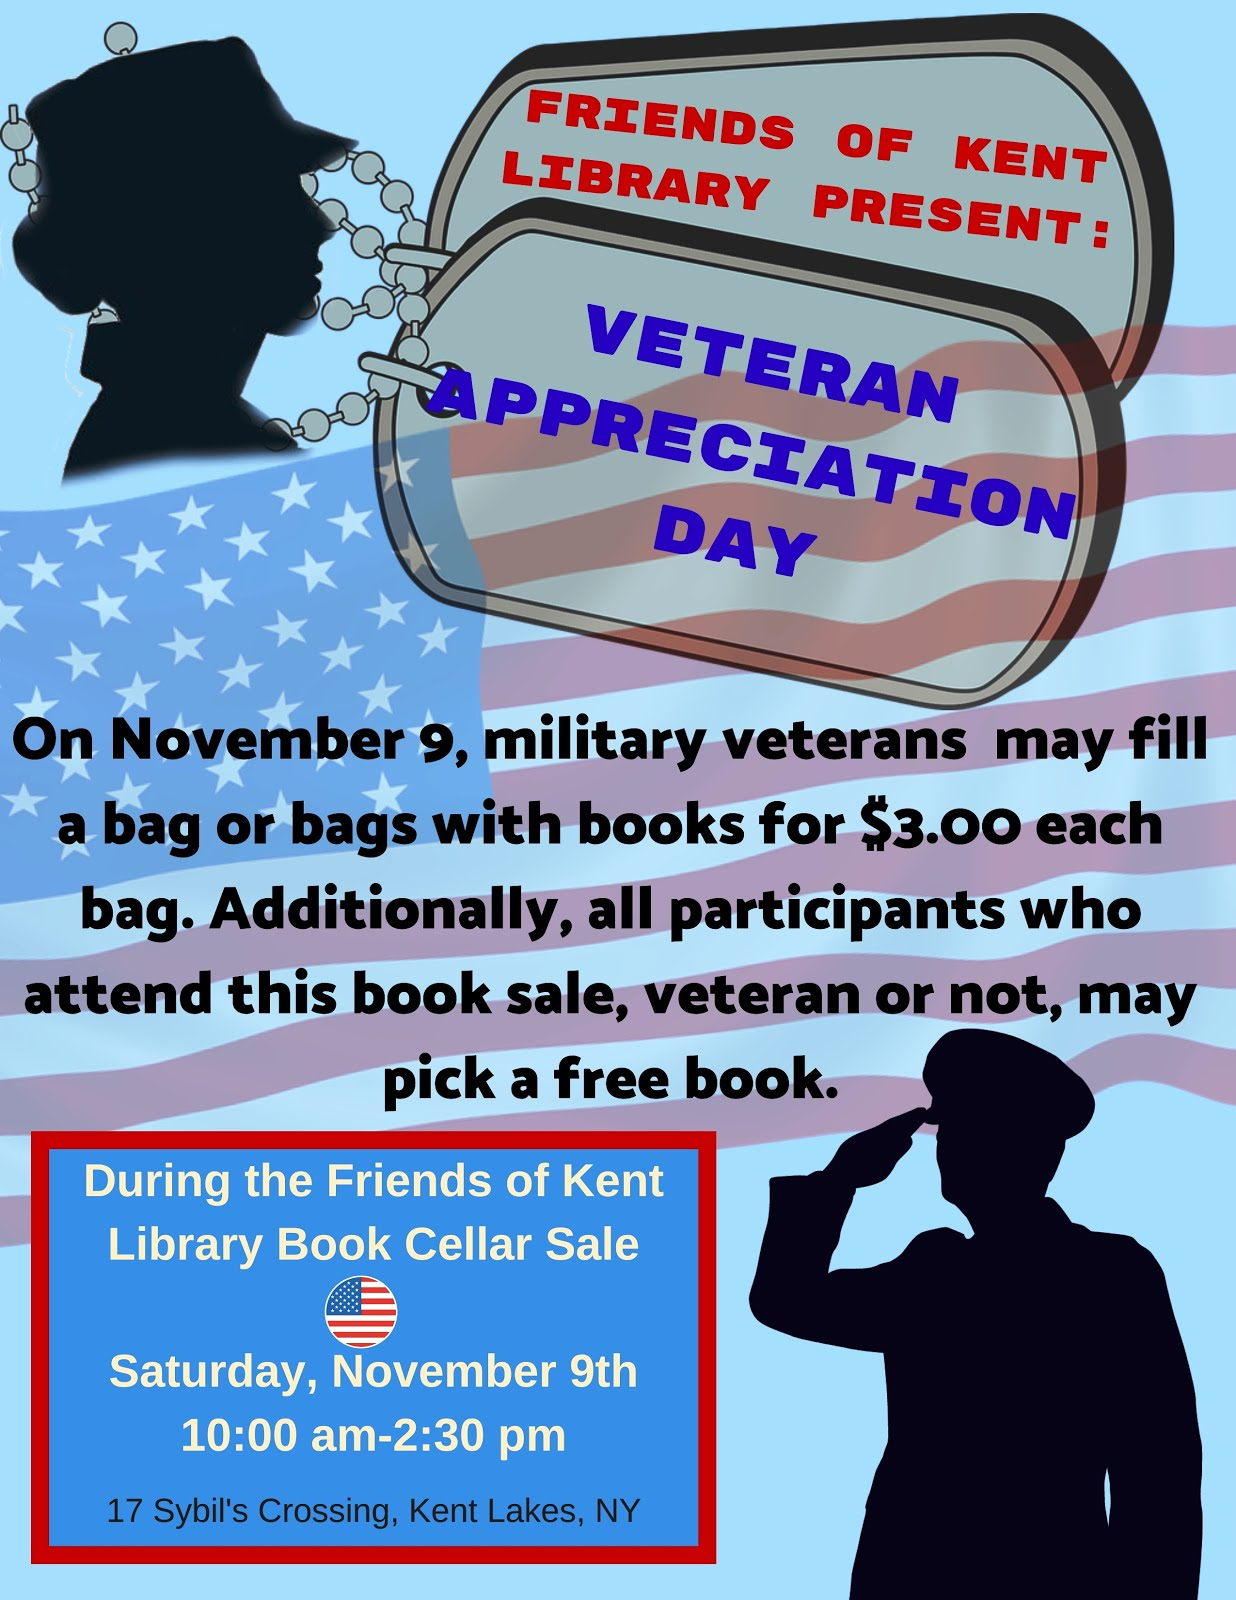 Veteran Appreciation Day!